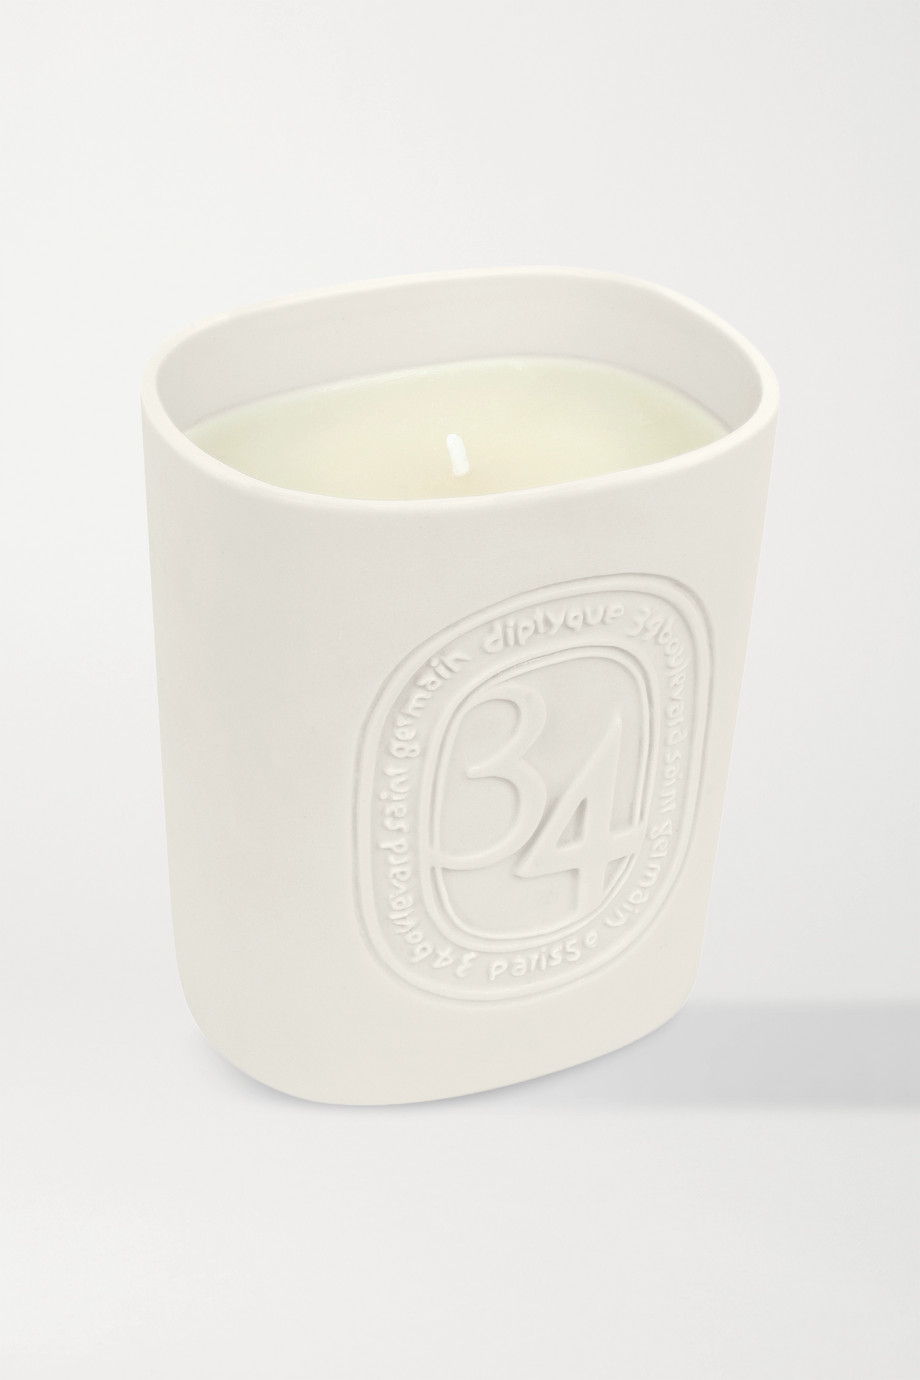 Diptyque 34 Boulevard Saint Germain scented candle, 220g